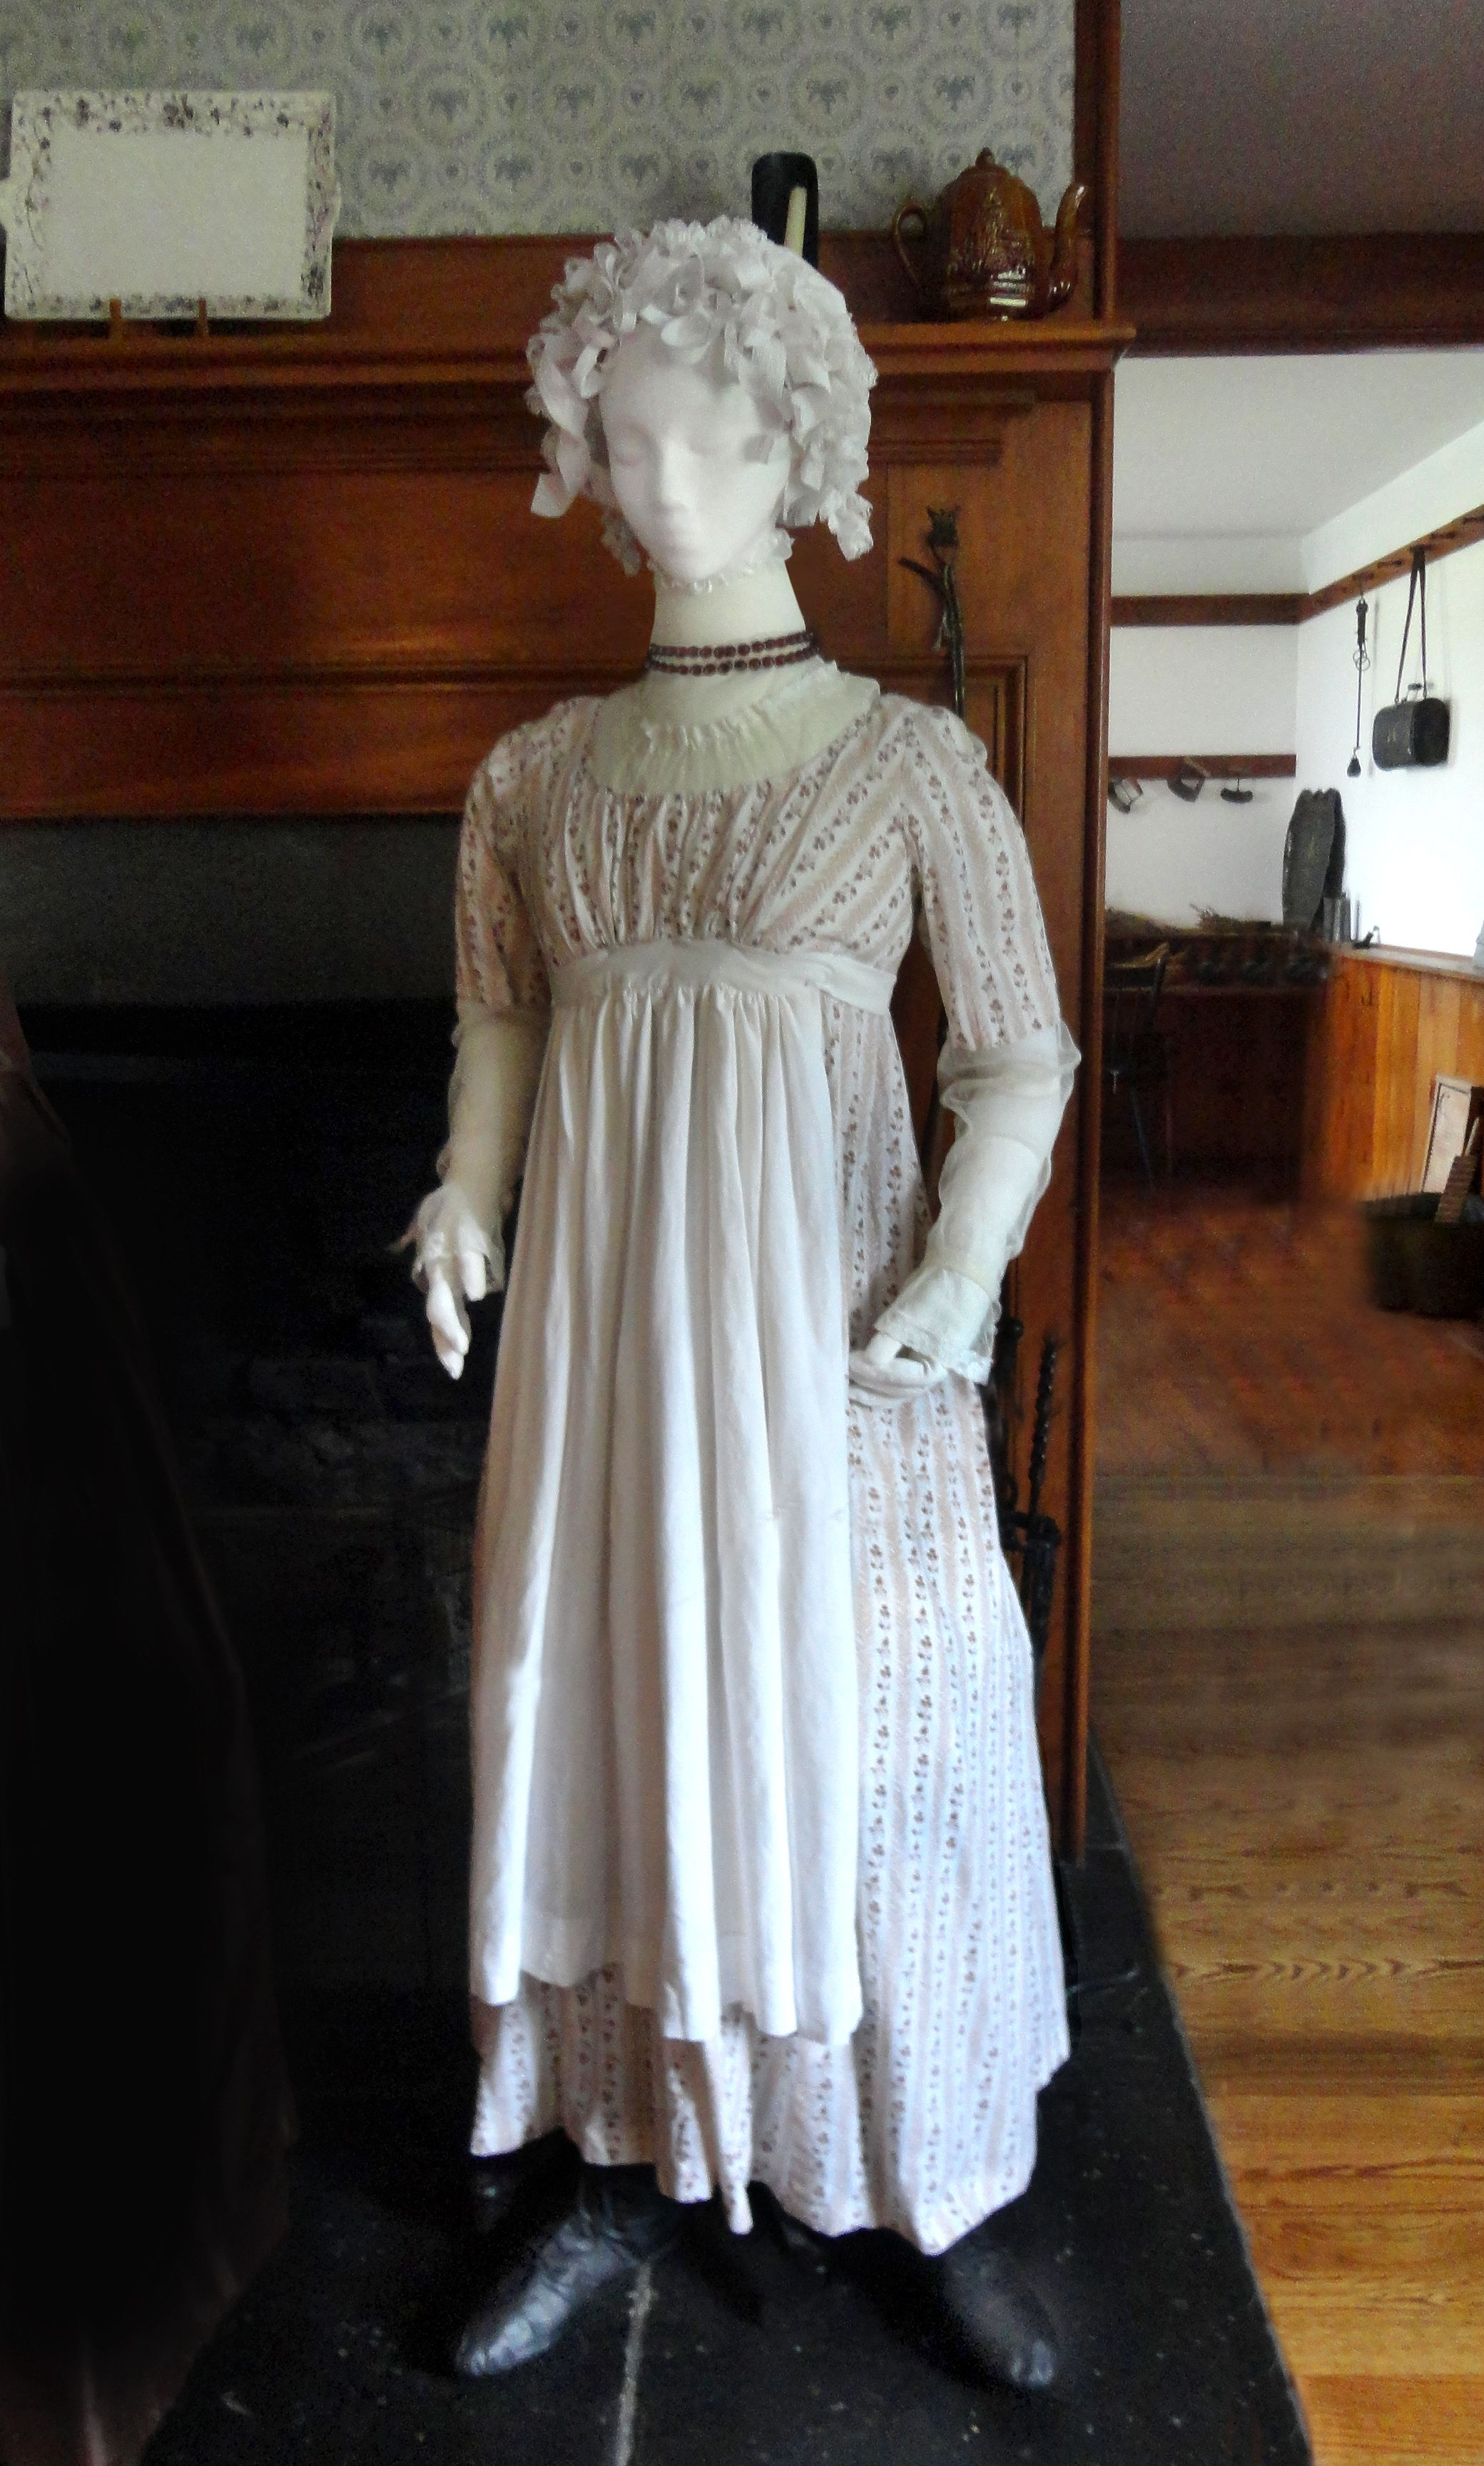 Housemaid, Vine Print Day Dress, 1790s Dress based on pattern in The Cut of Women's Clothes, by Norah Waugh. White and pale pastels are colors associated with Neo-classical styles, but one-piece dresses like this one show that delicate prints were also popular. The 'round gown' had the bodice and skirt sewn to form a one-piece dress. The outfit is accessorized with a lace cap and linen apron.